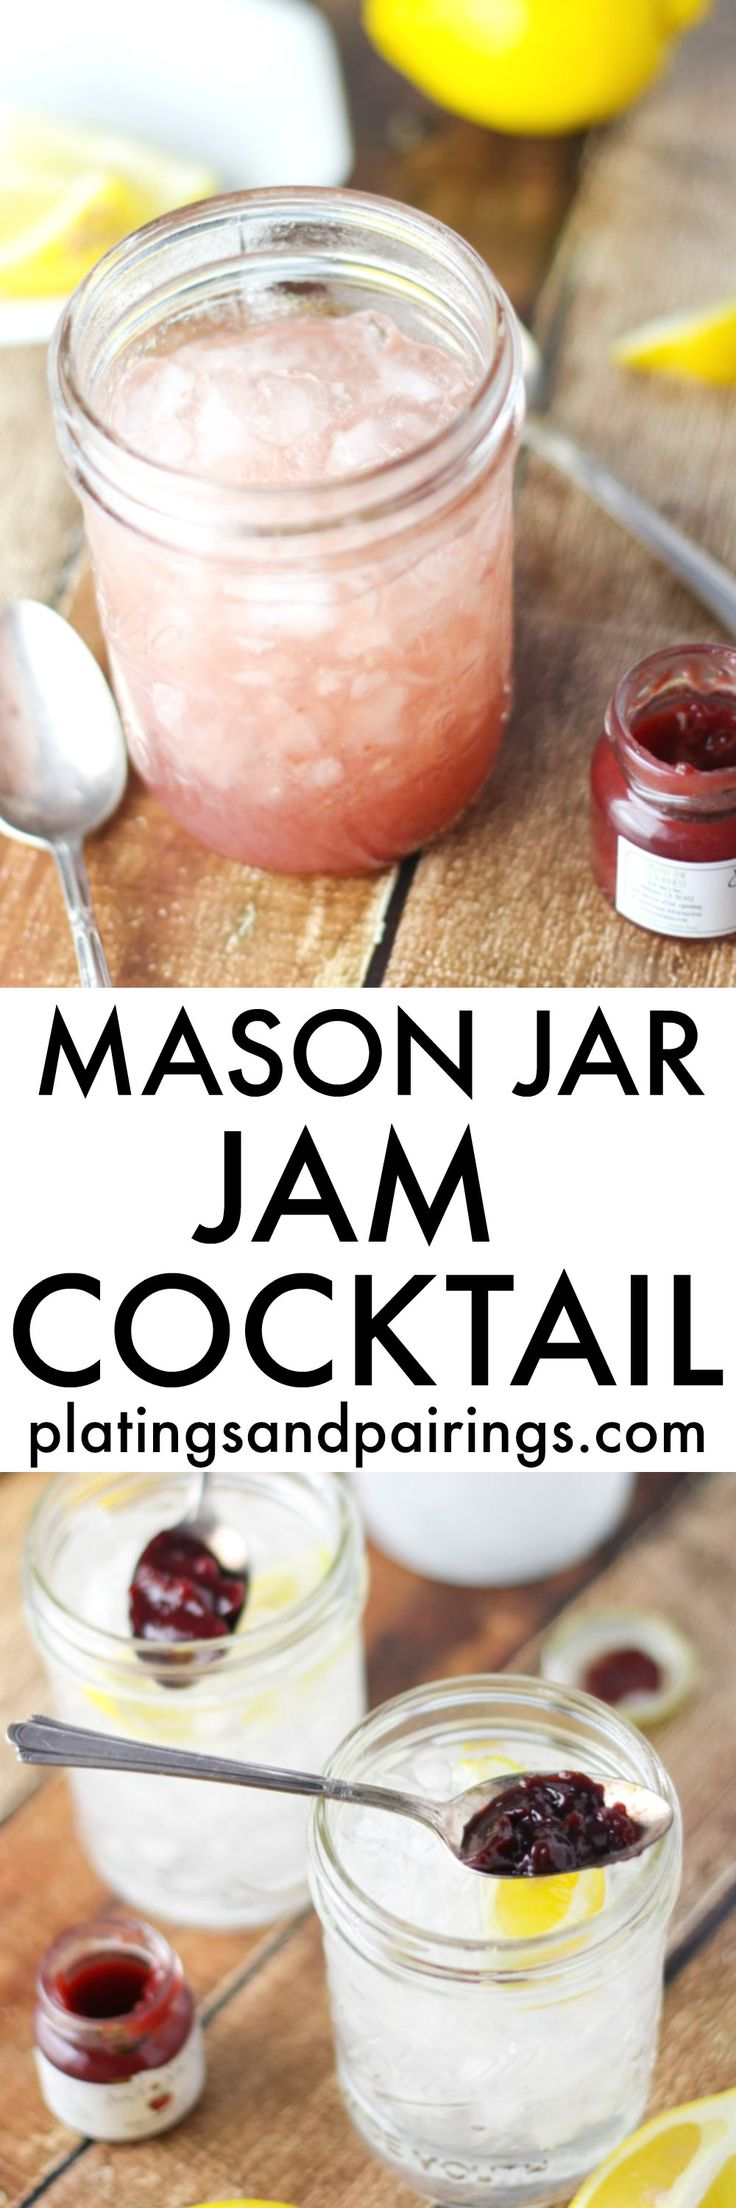 This Mason Jar Jam Cocktail (or Jamtini) is easy to make at home and totally customizable. All you need is your favorite juice, jam, vodka, gin, rum or bourbon and club soda | platingsandpairings.com